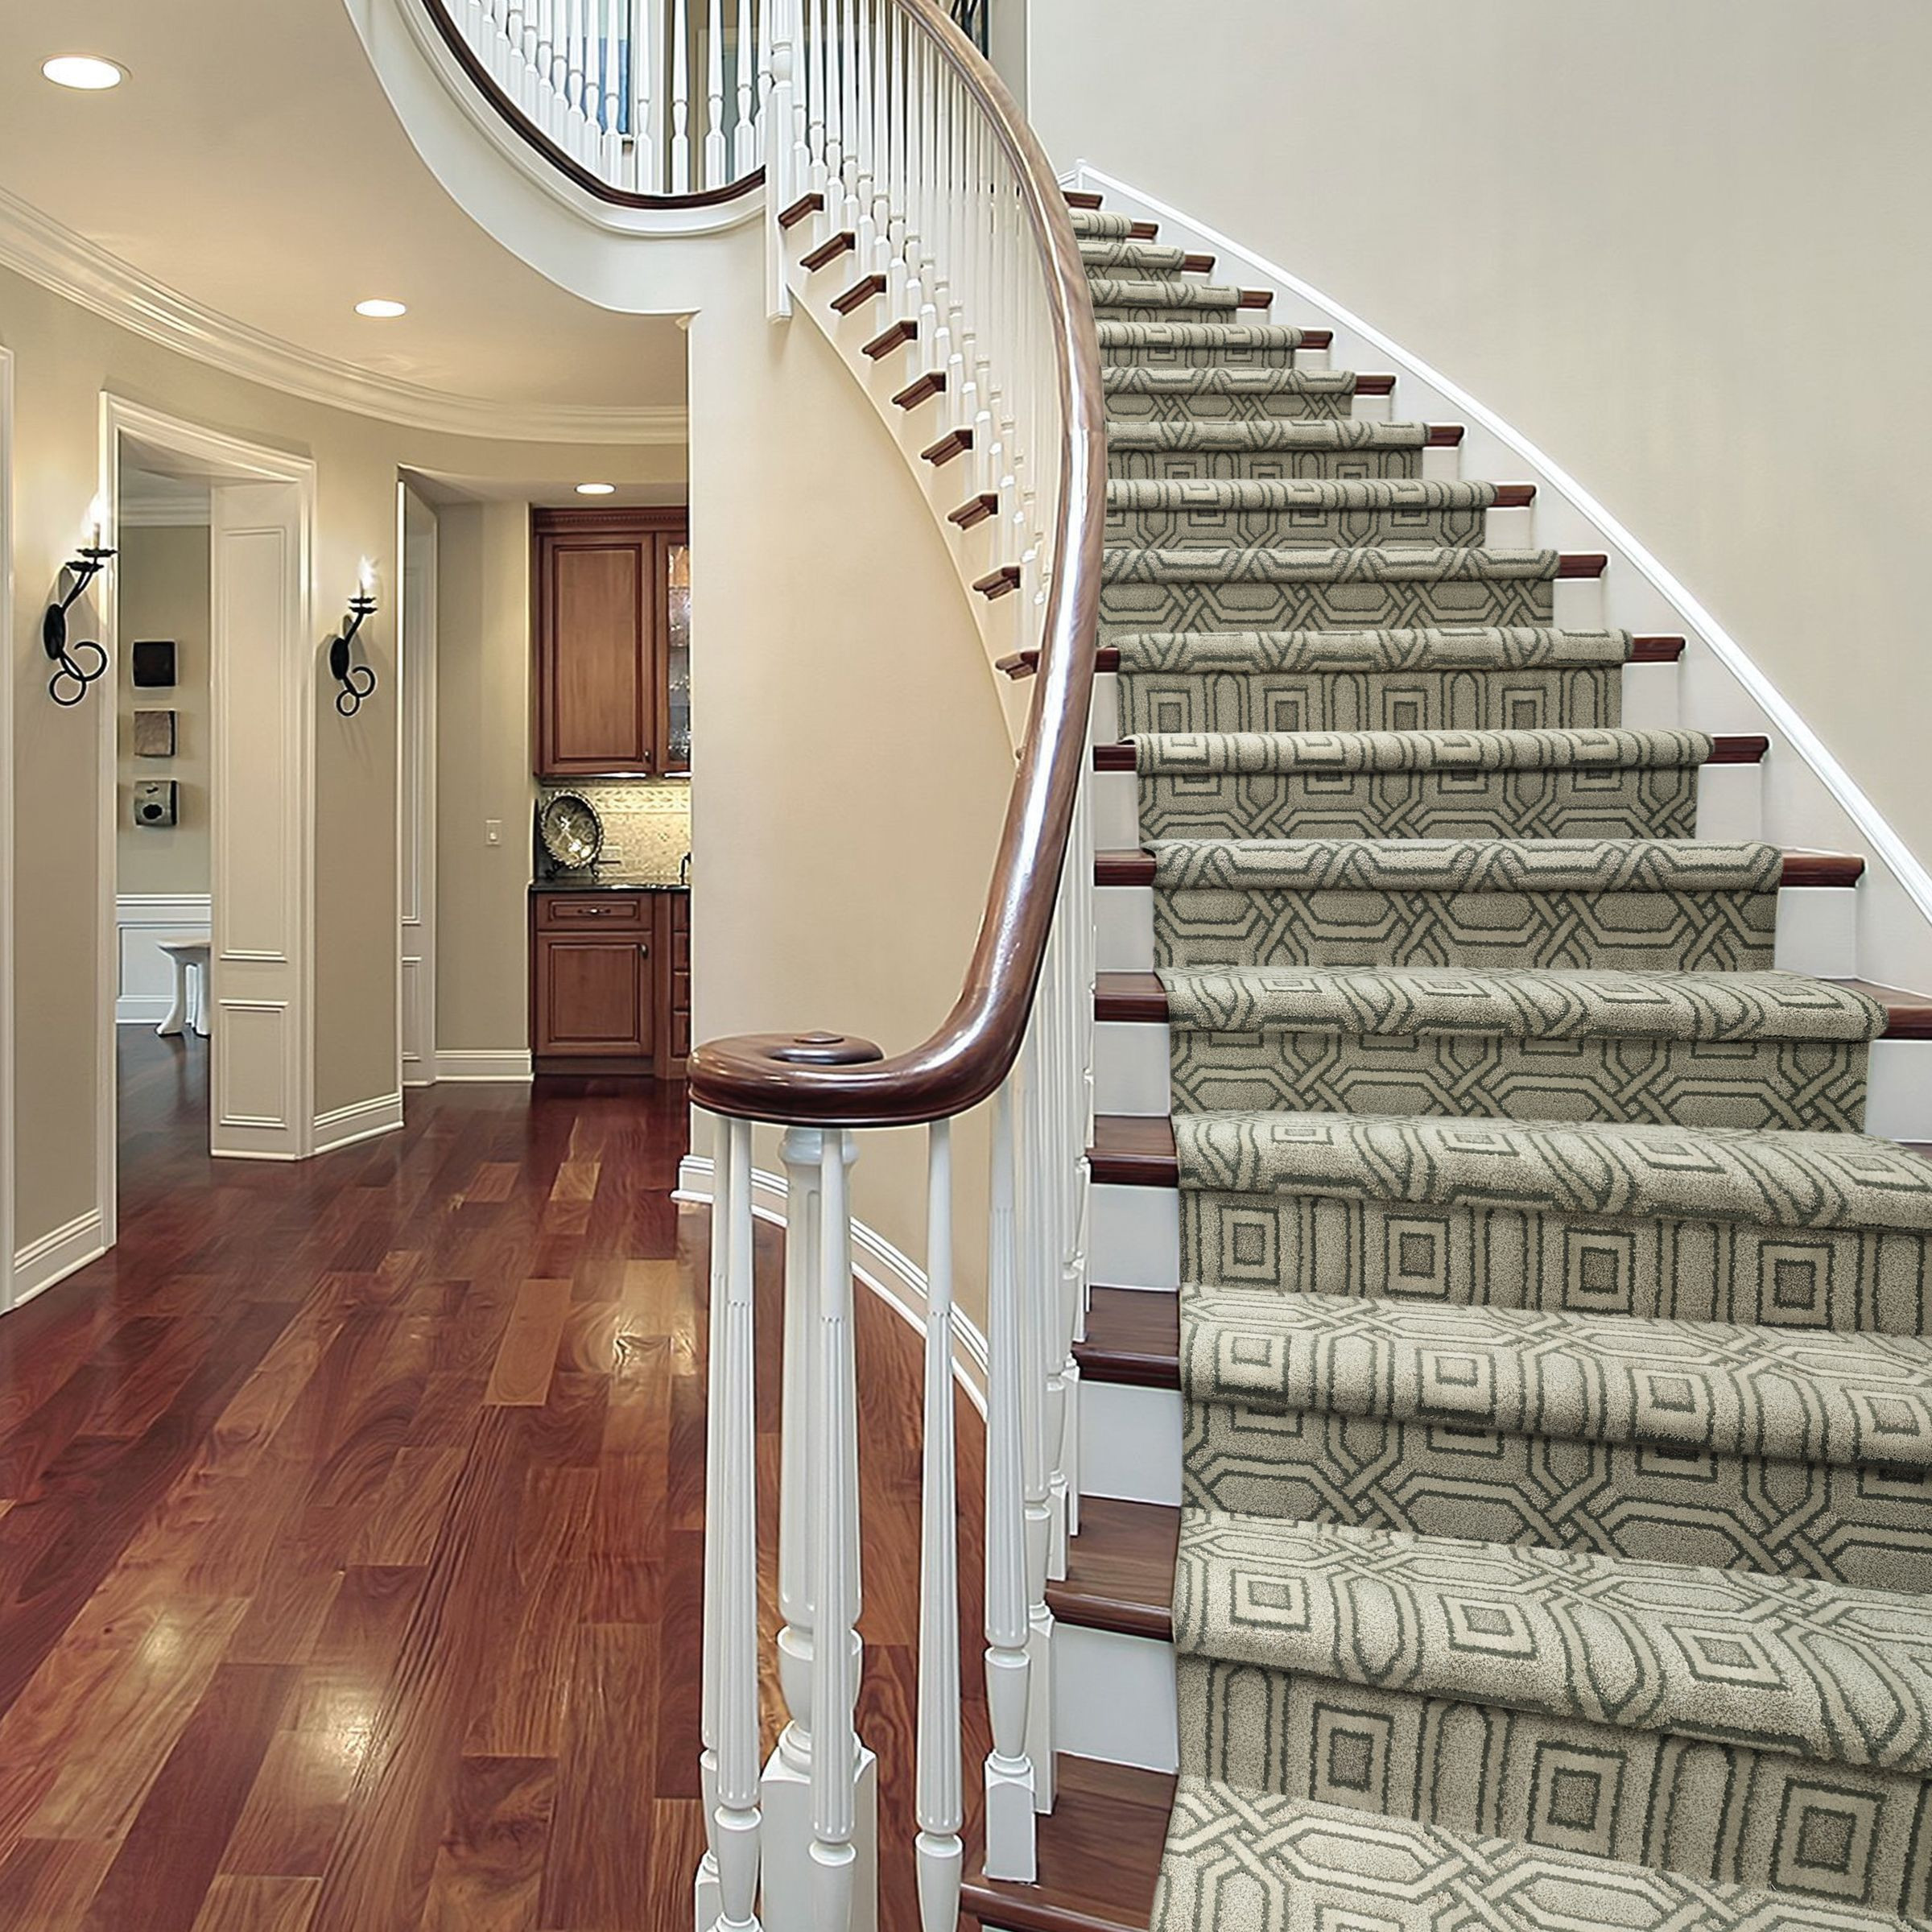 Hardwood Floor Stairs Images Of Tuftex Pavilion Tuftex Stanton Stairways Pinterest Pavilion within Tuftex Pavilion Hardwood Floors Stairways Rugs On Carpet Pavilion Villa Stairs